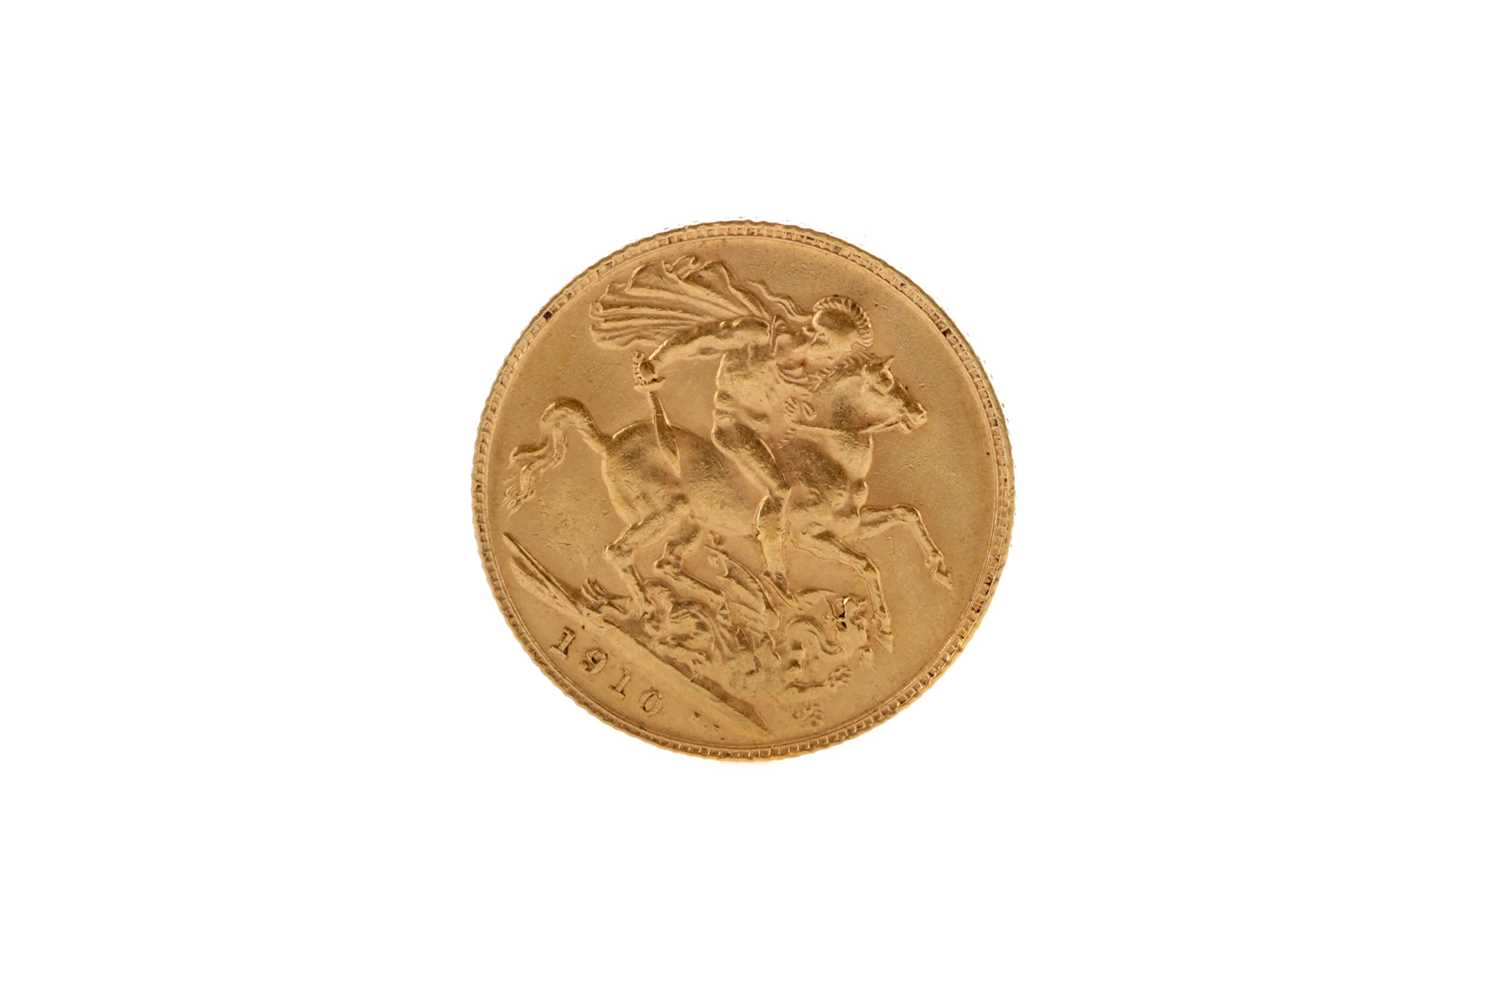 Lot 20 - A GOLD SOVEREIGN DATED 1910